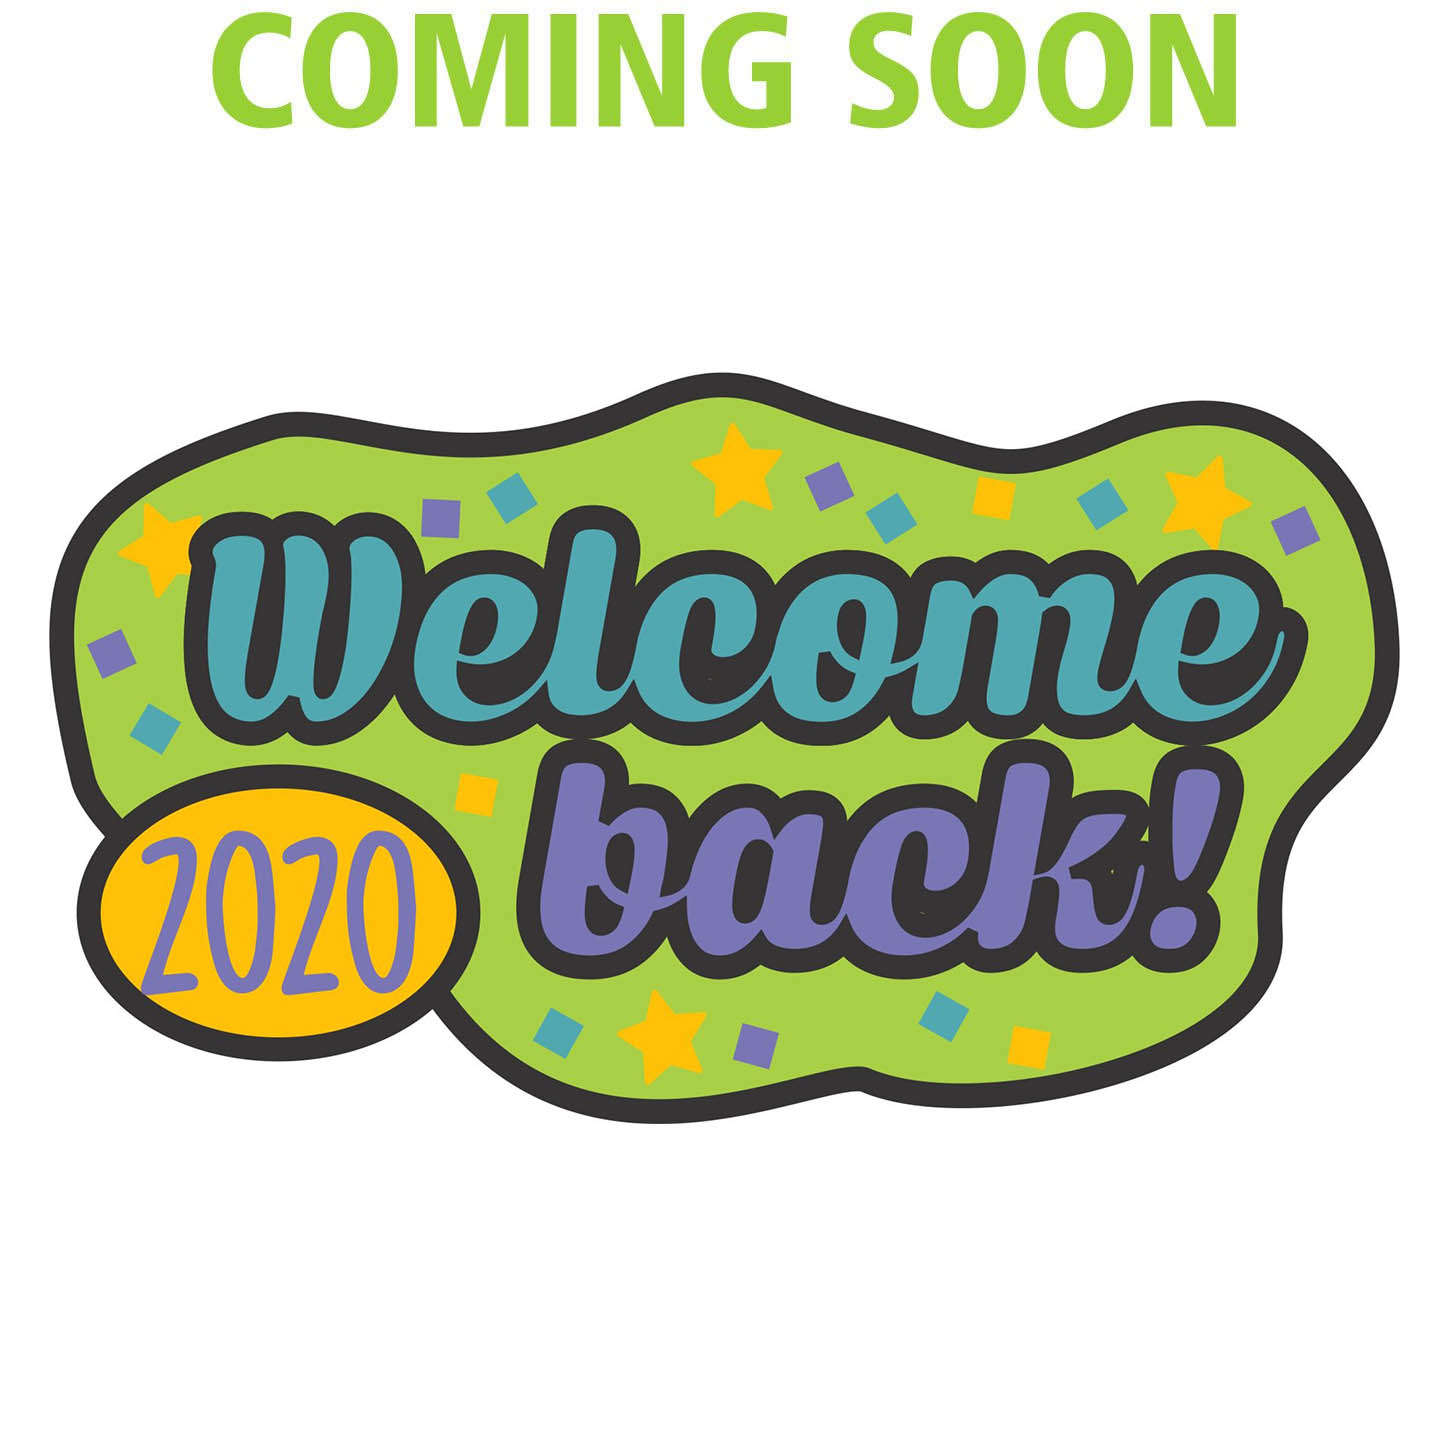 Girl Scout Welcome Back 2020 Patch